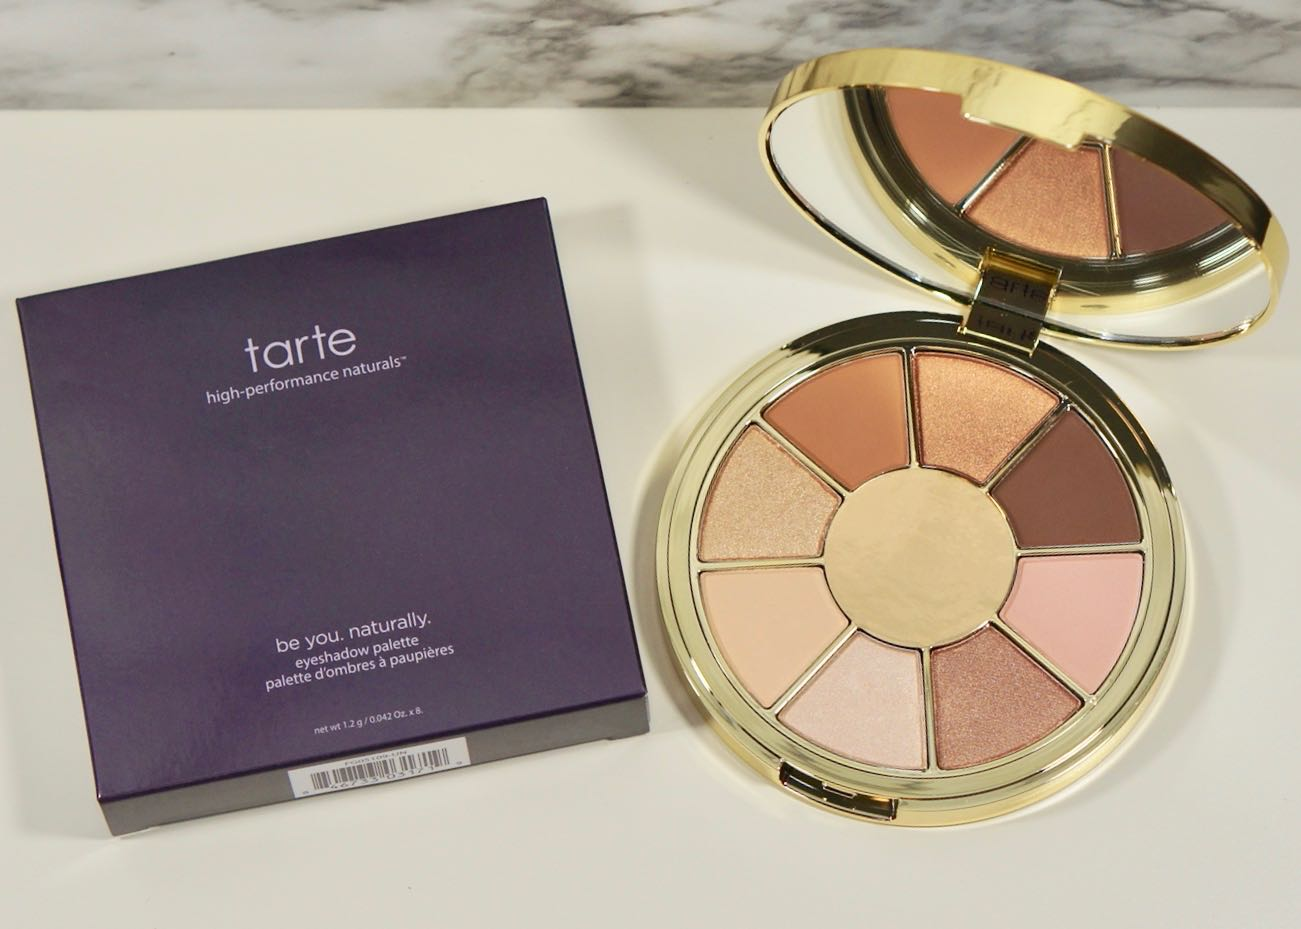 Tarte-Be you. Naturally. Eyeshadow paletteDSC01504.jpg